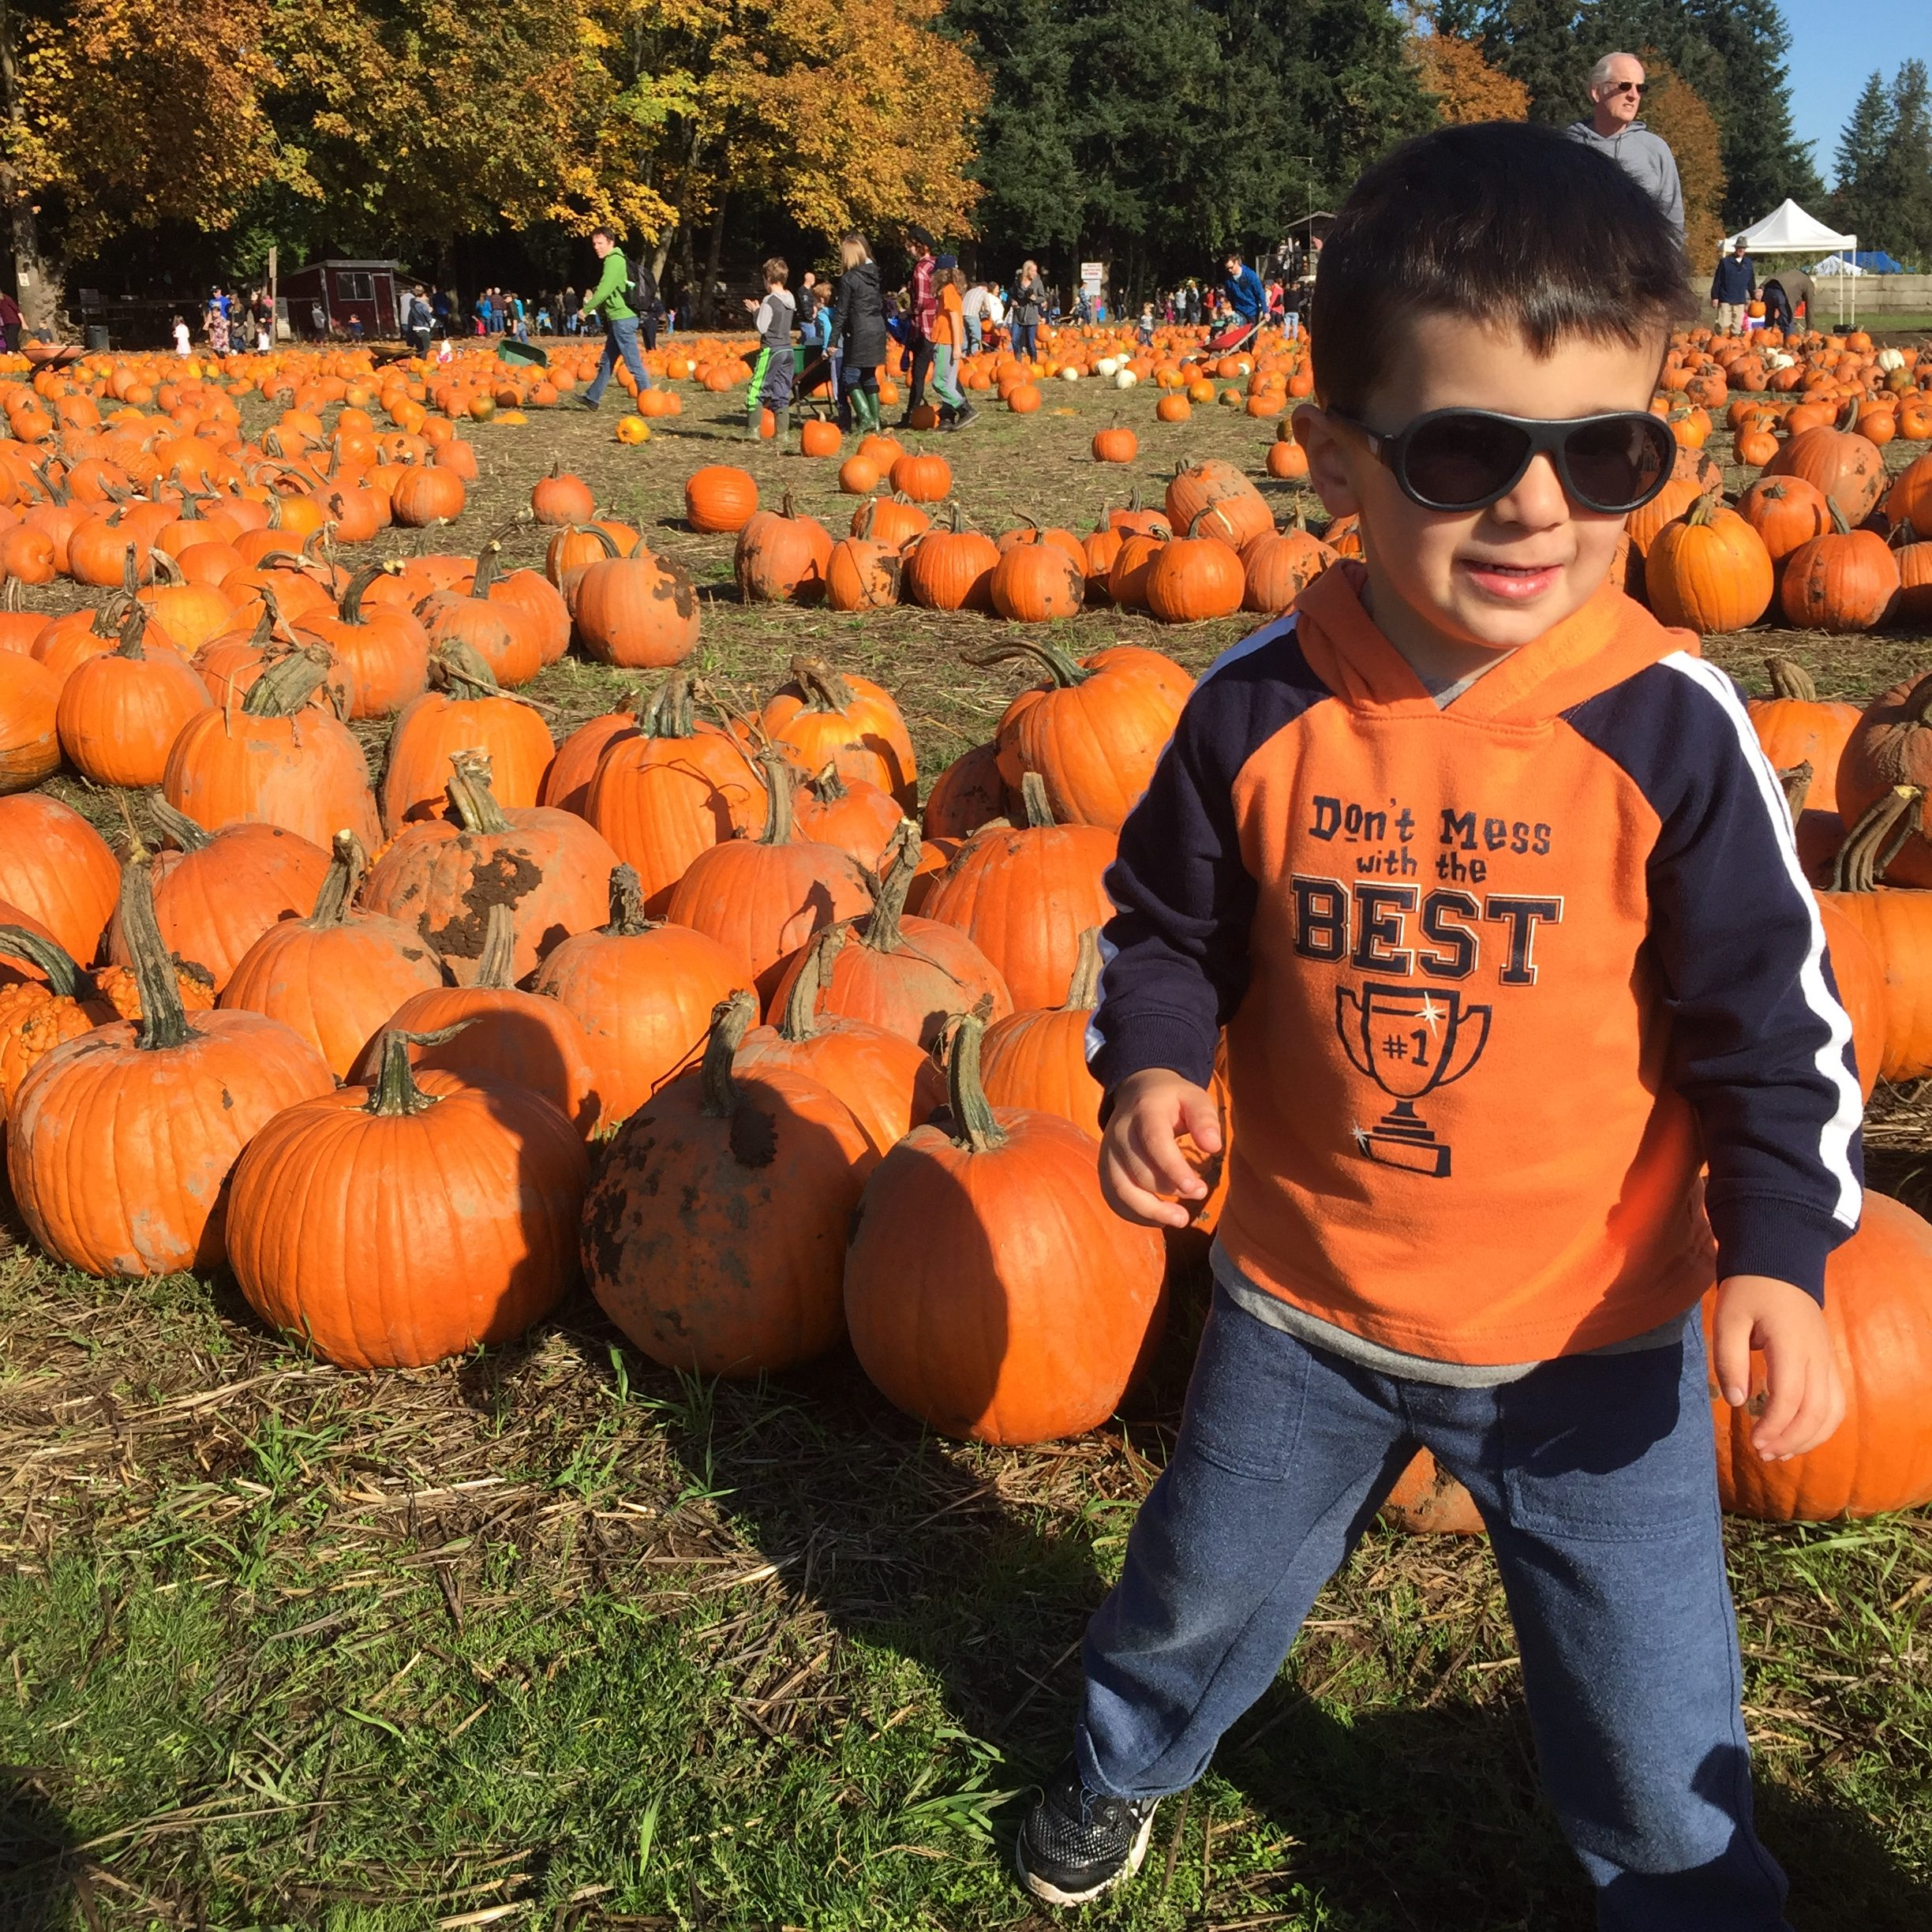 Hillsboro Pumpkin patch